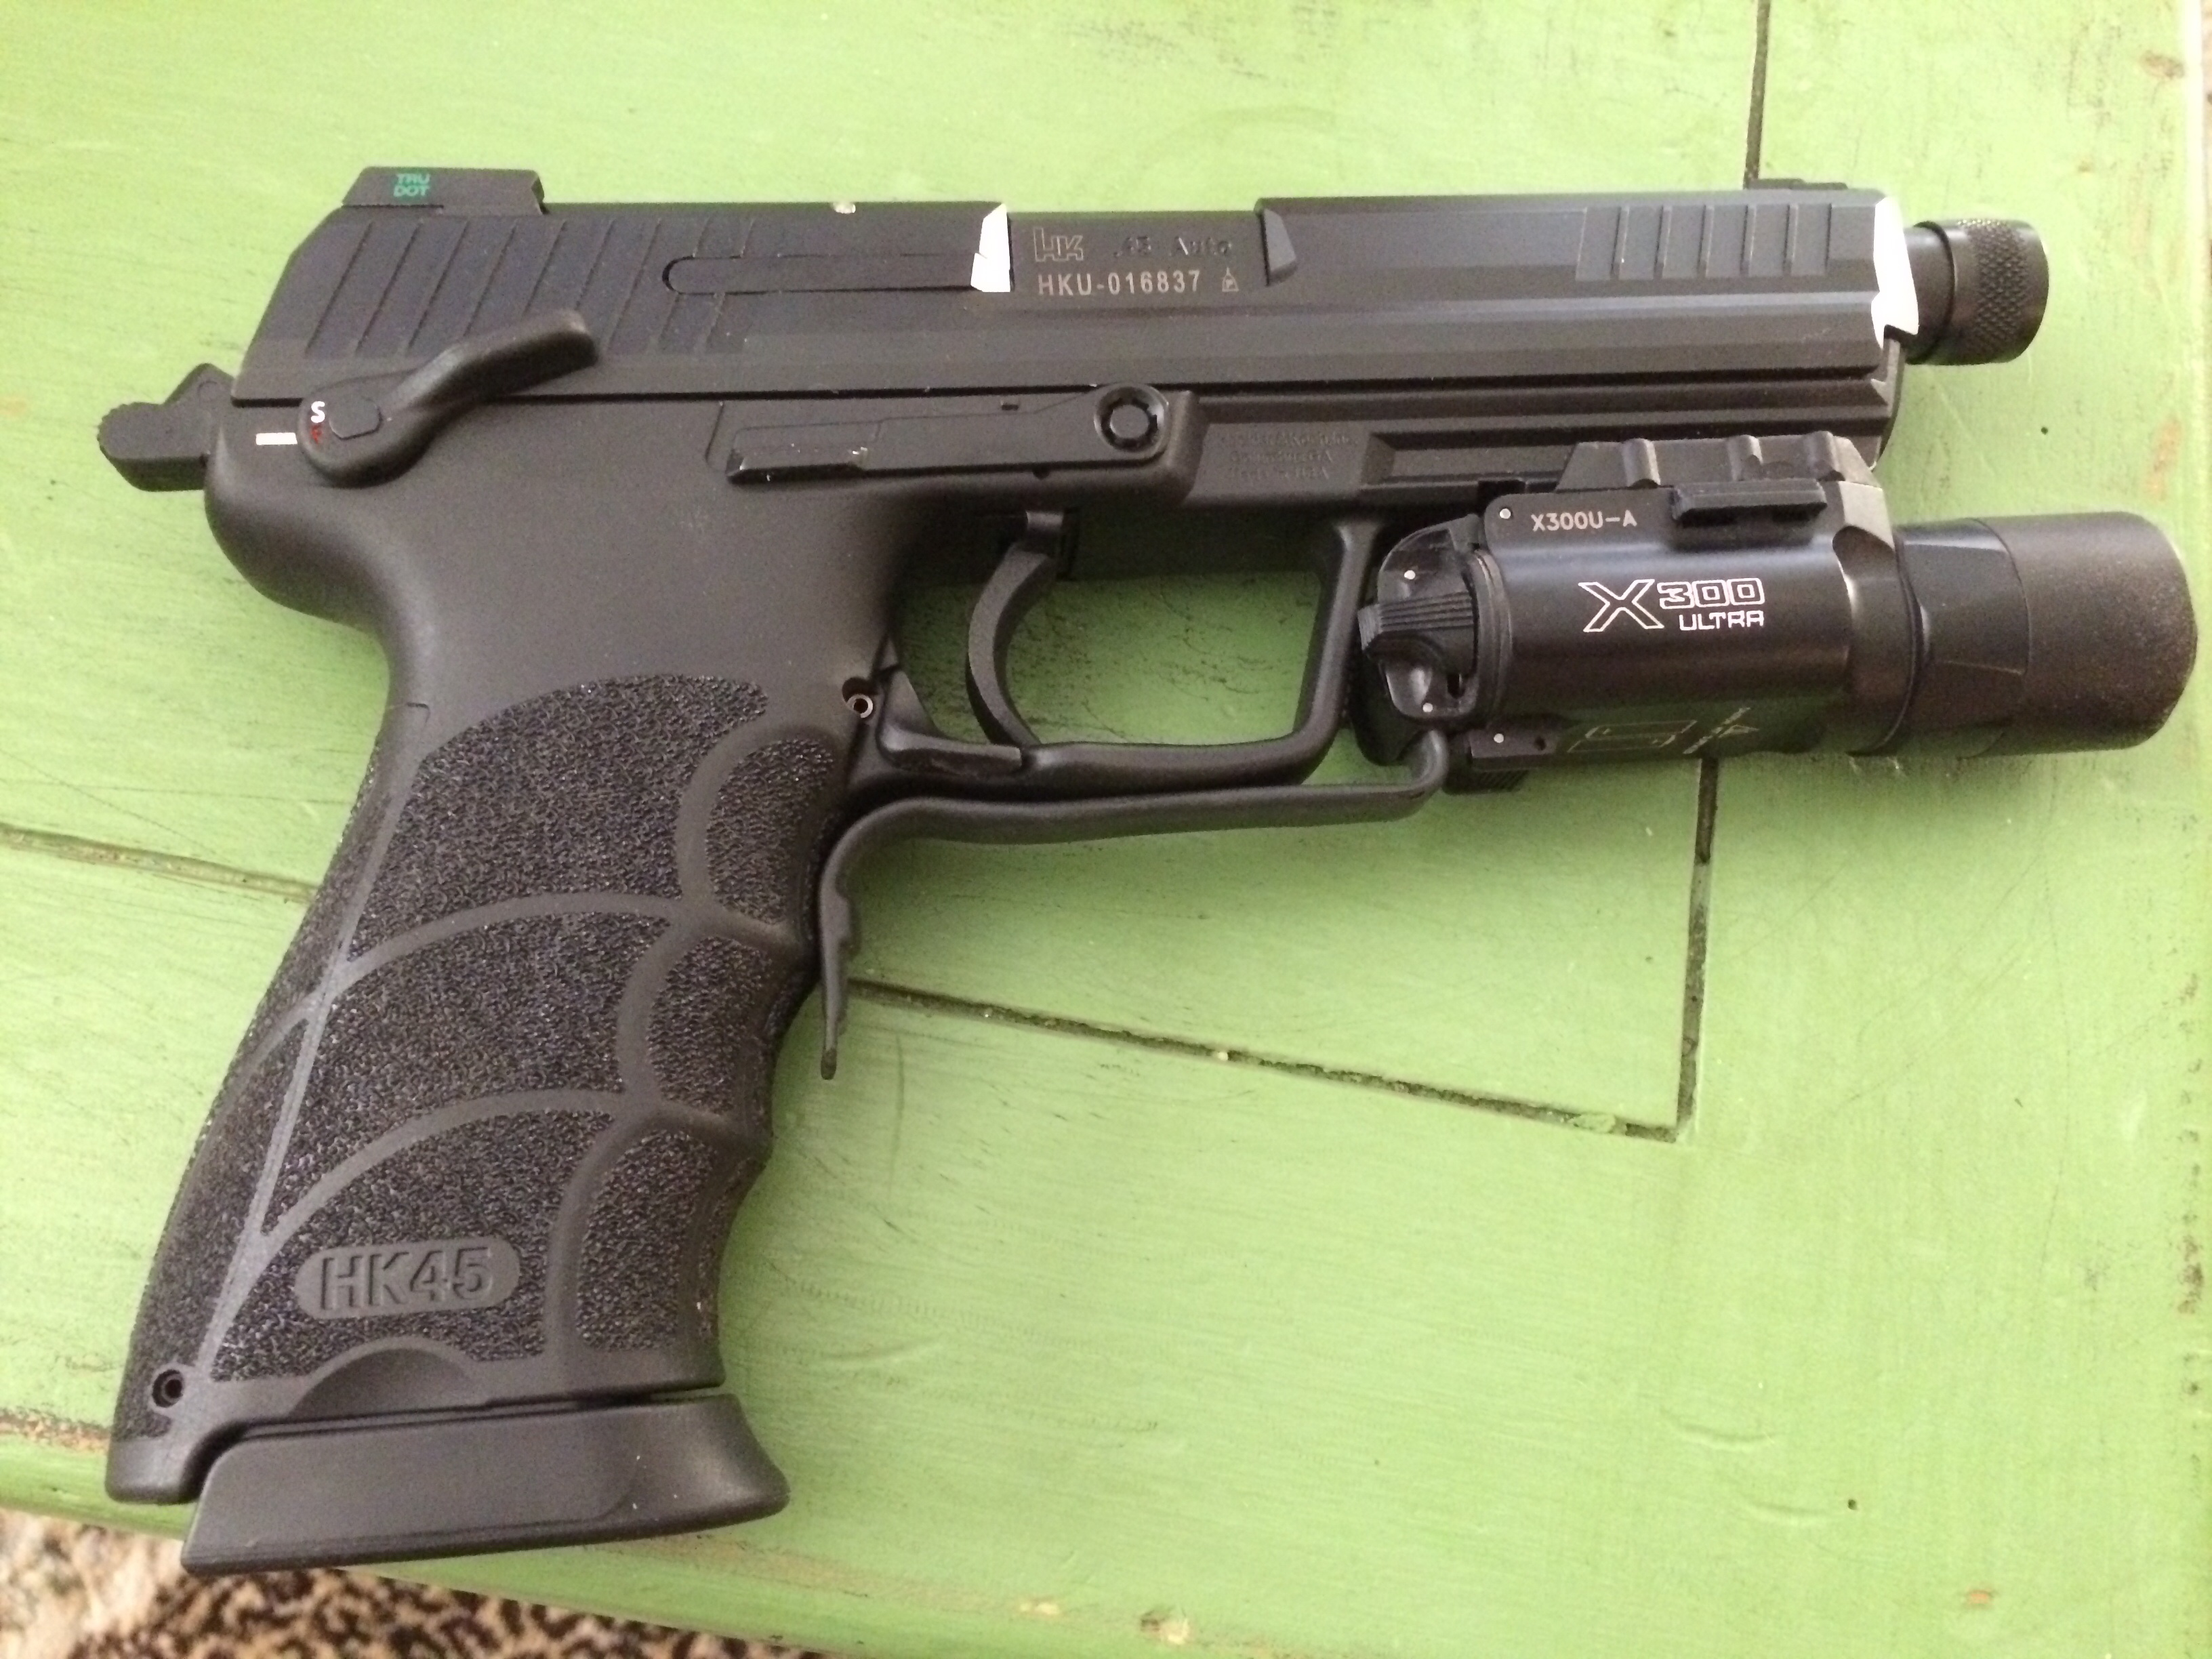 New addition to the family! HK45 tactical